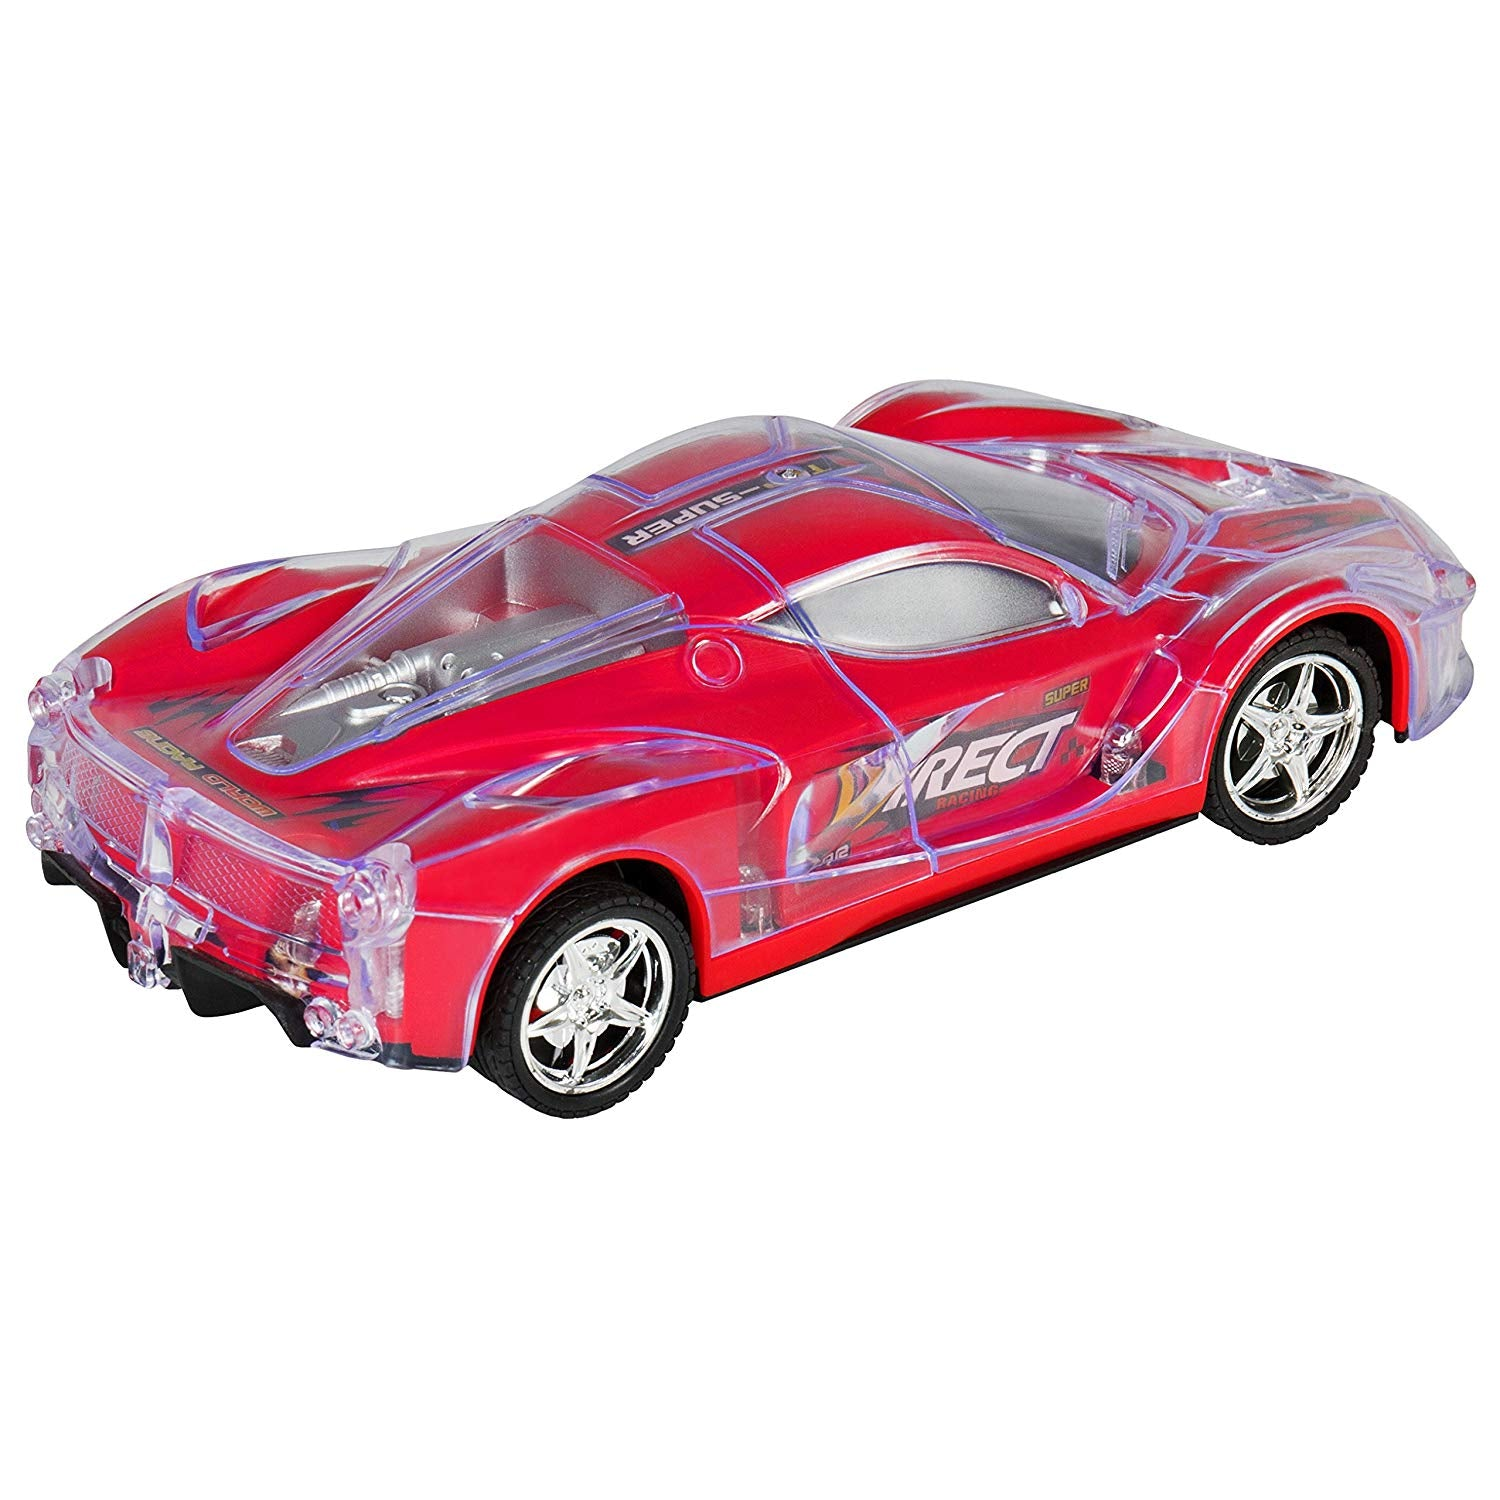 Toy 27Mhz Remote Control Light Up RC Racing Car w/ Flashing LED Lights- Red